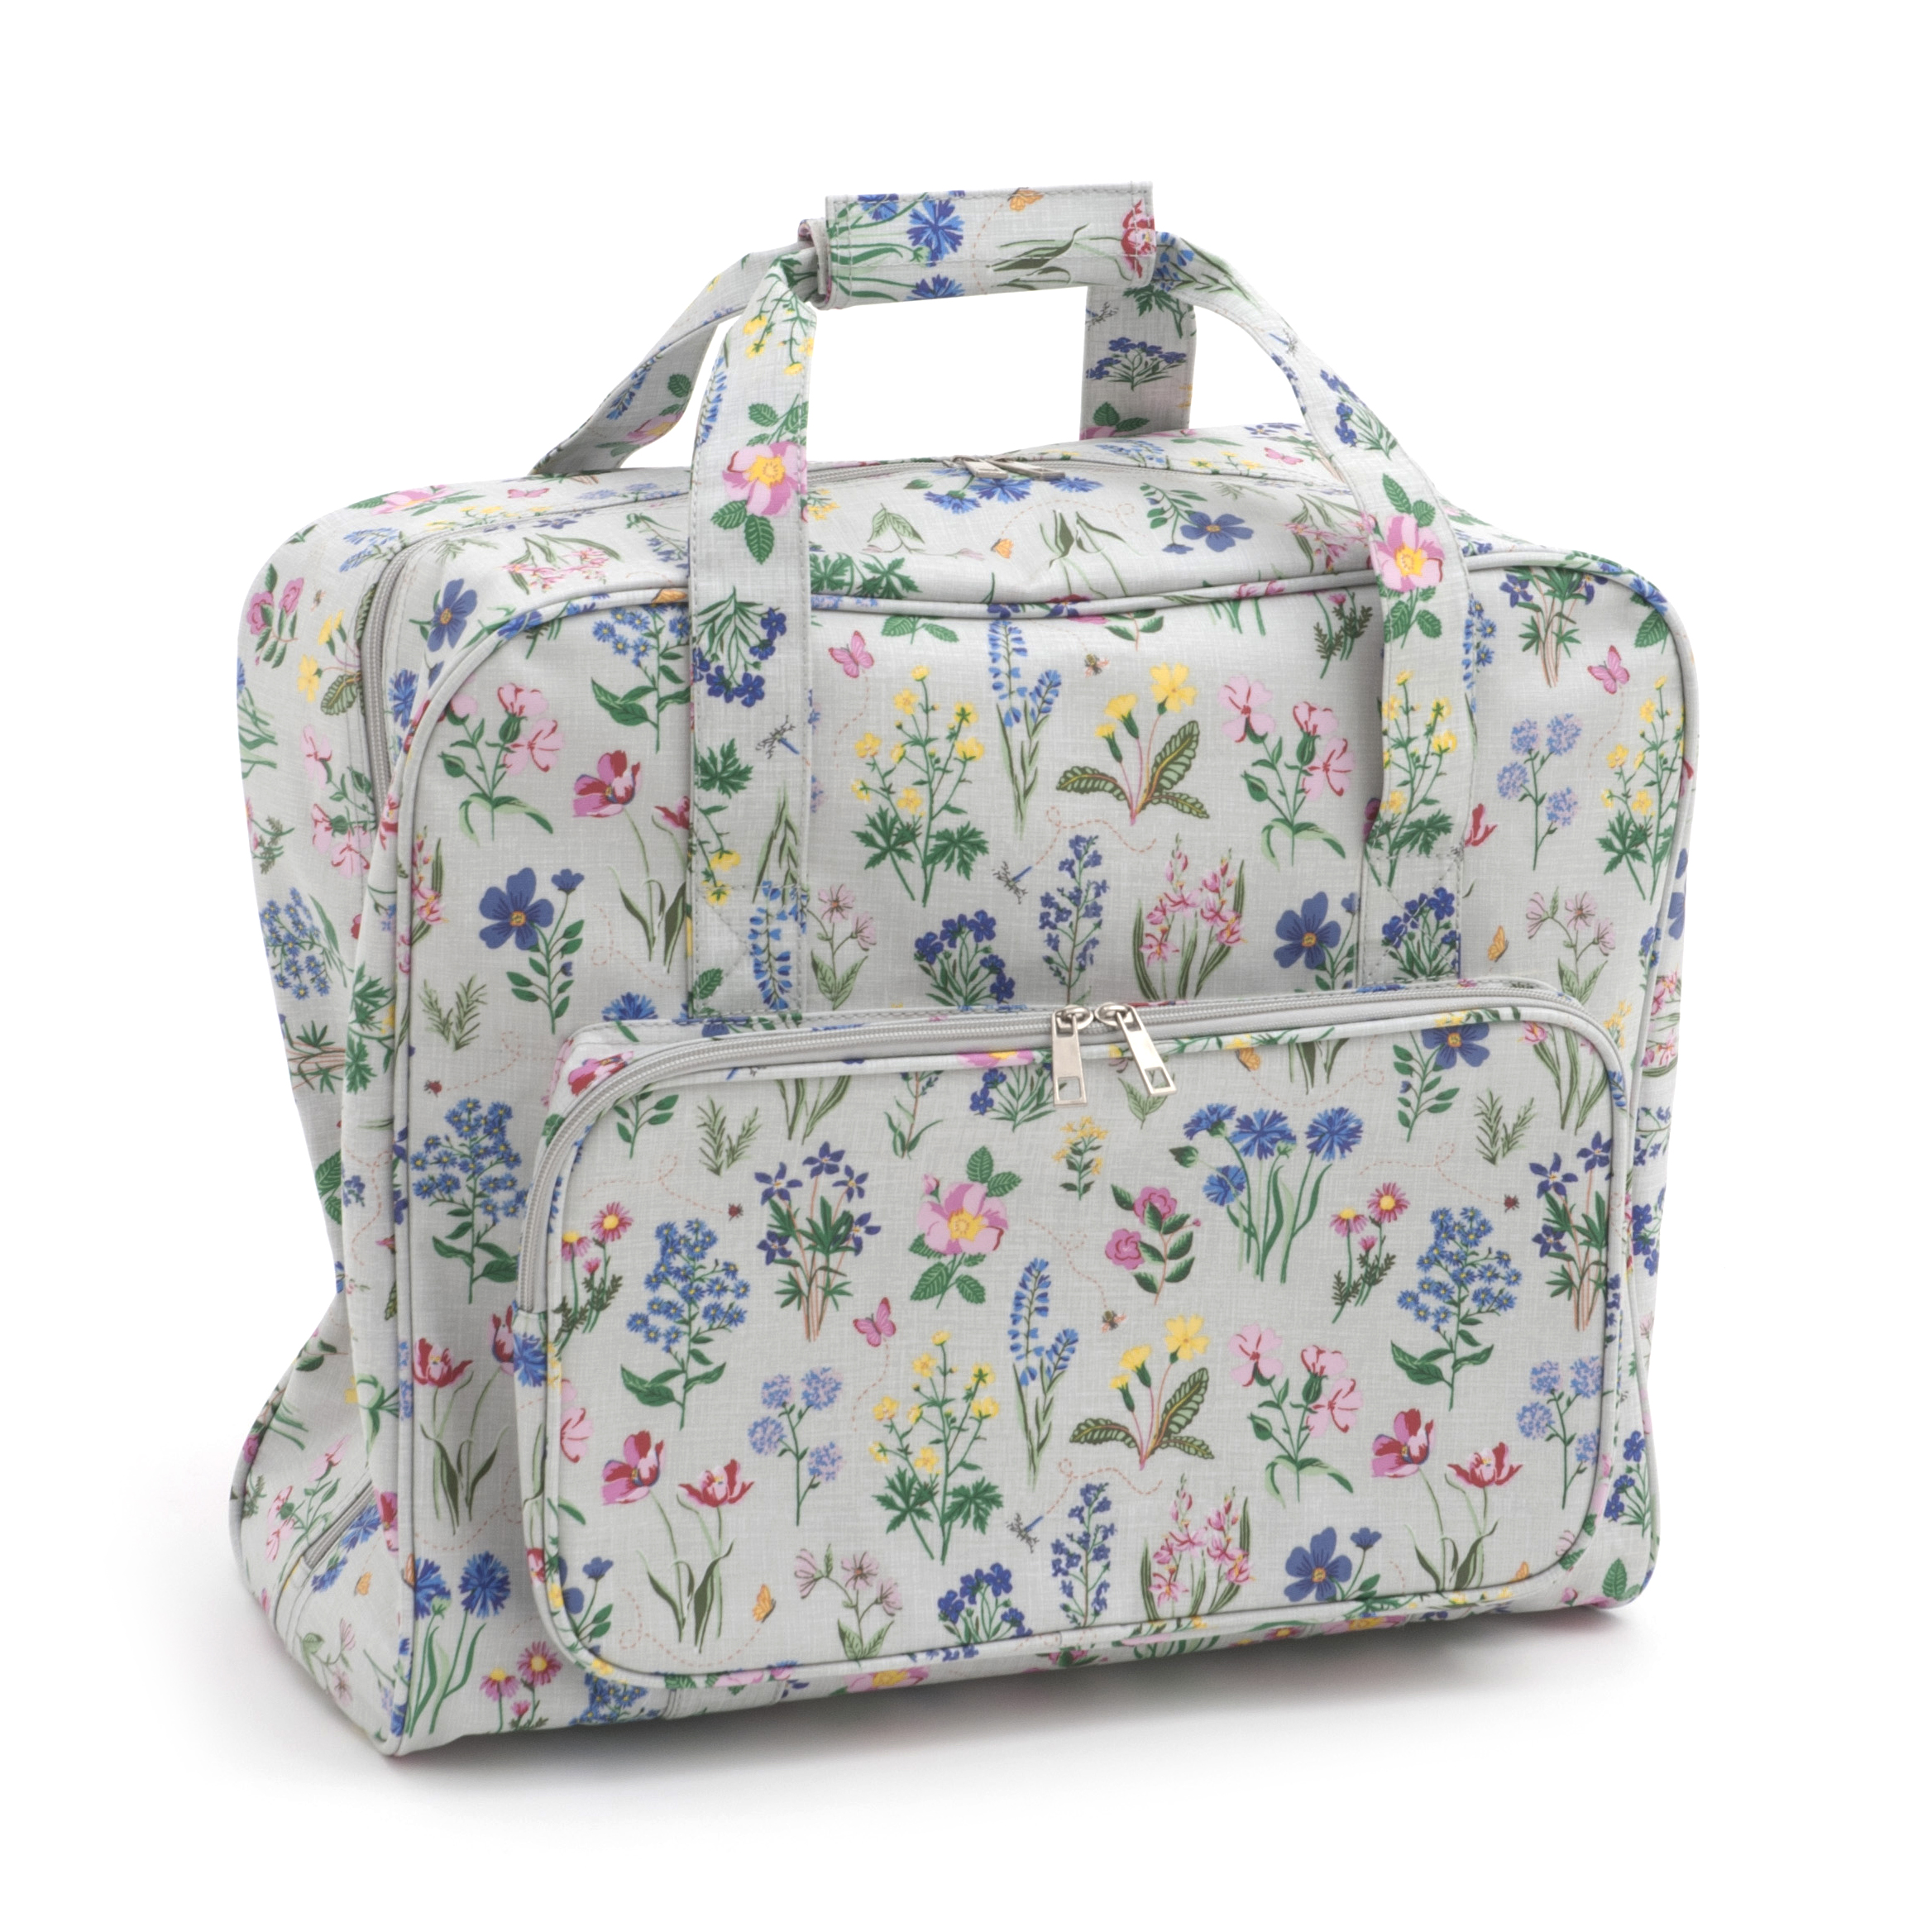 Sewing machine bag carry storage for a